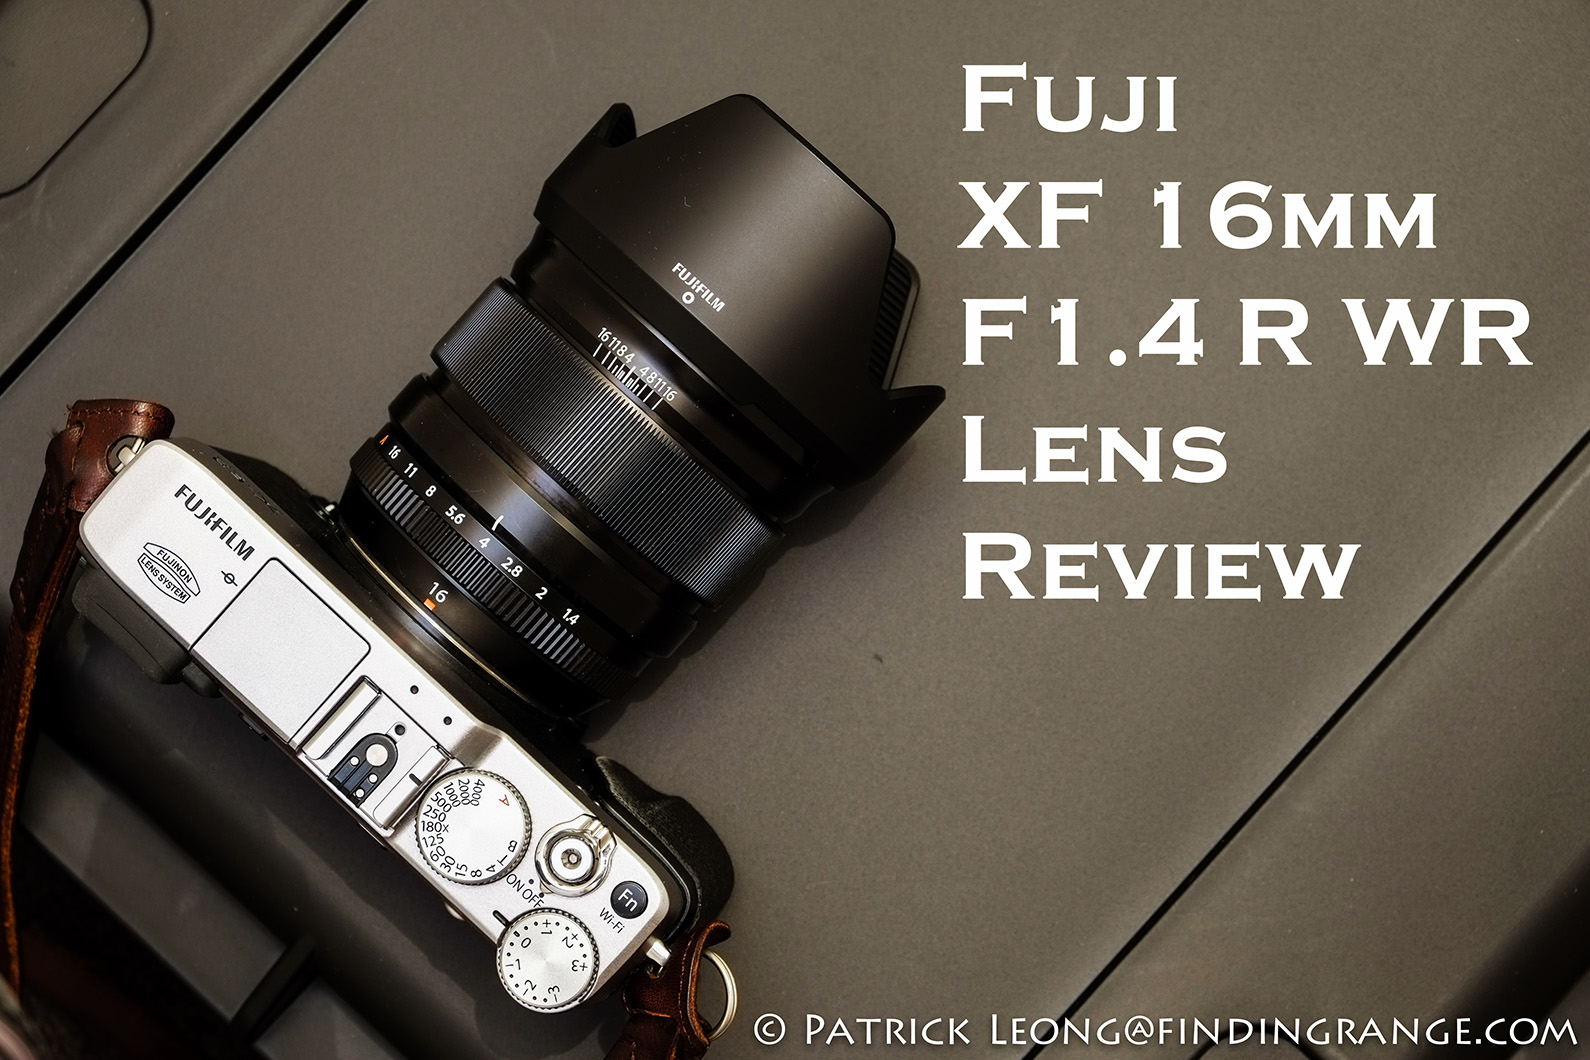 Fuji-X-E2-XF-16mm-F1.4-R-WR-Lens-Review-1 copy